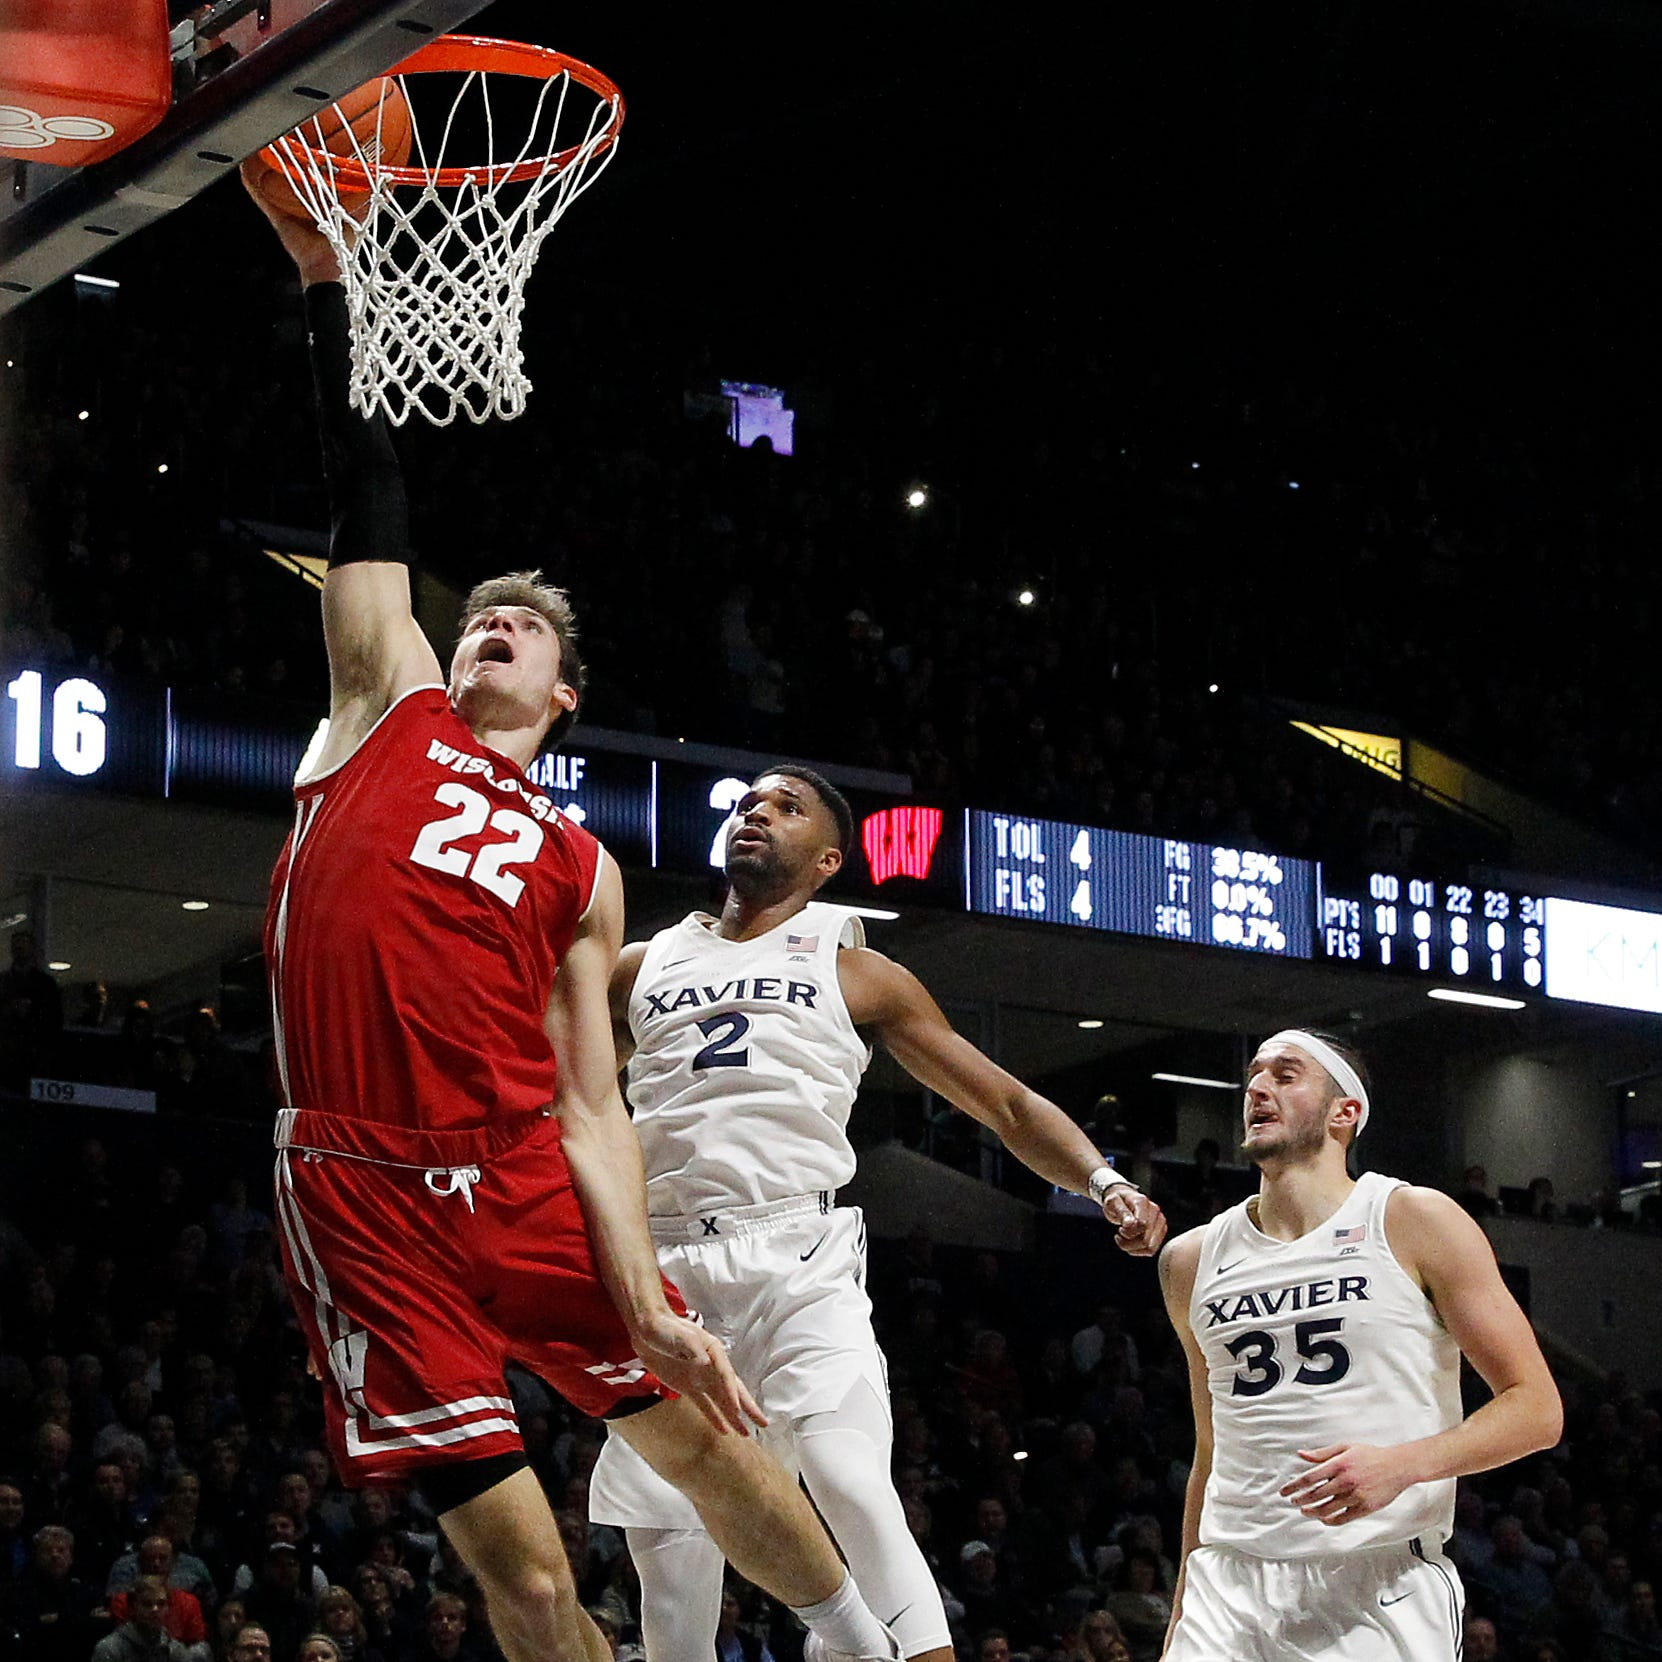 Xavier Musketeers 'fought back' but Wisconsin and Ethan Happ were too much